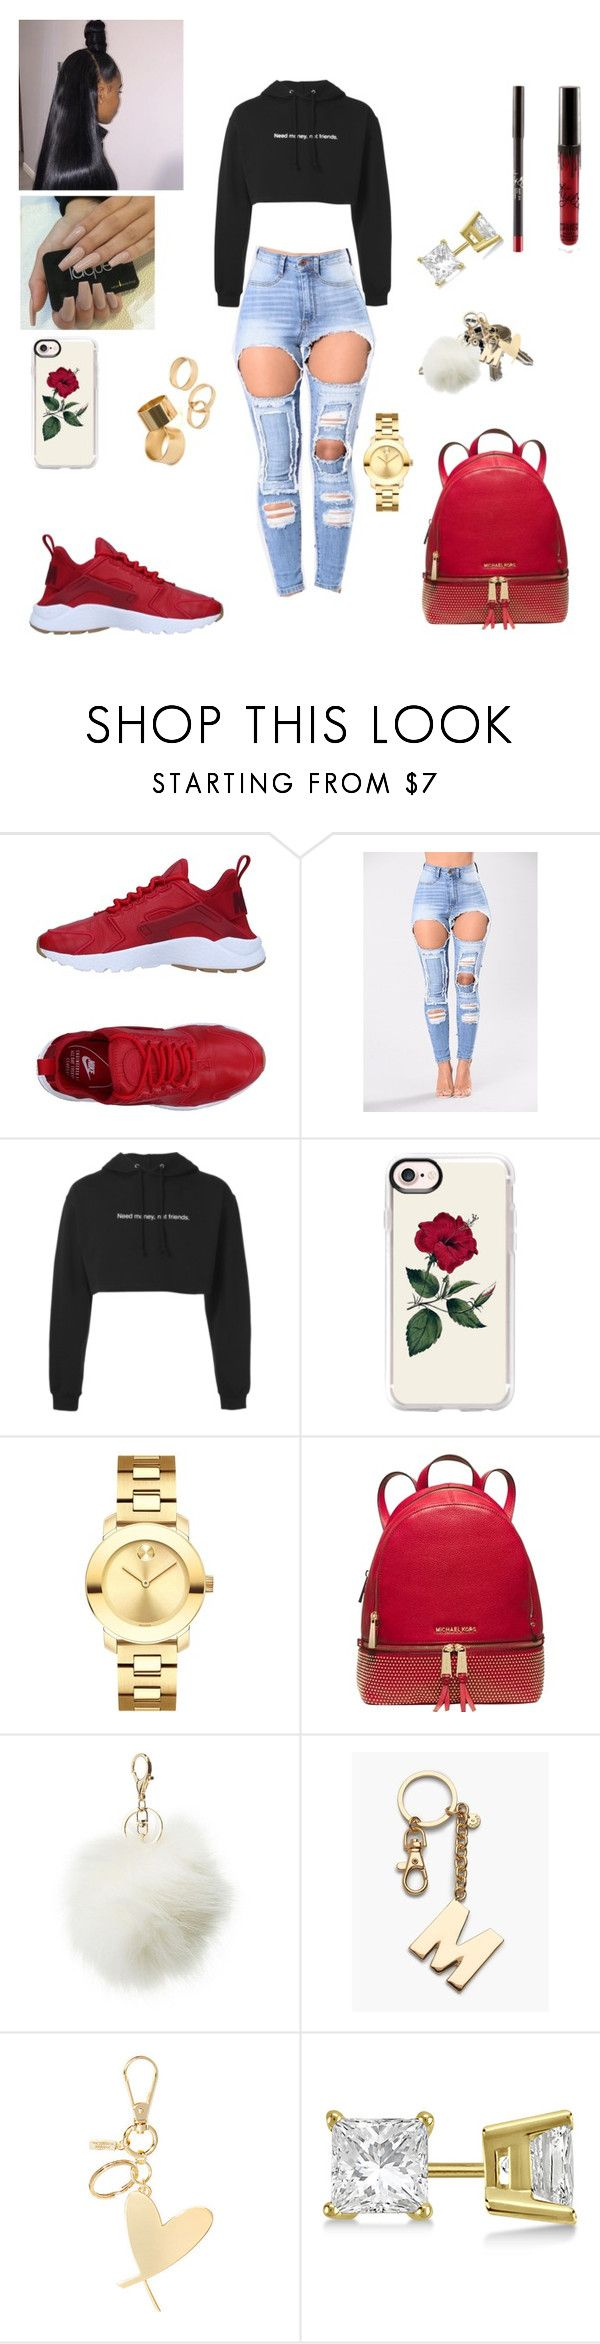 """#Mall Run👫💭❤️🤭"" by prxncessm ❤ liked on Polyvore featuring NIKE, F.A.M.T., Casetify, Movado, Michael Kors, Avon, Charlotte Russe, Talbots, Victoria's Secret and Allurez"